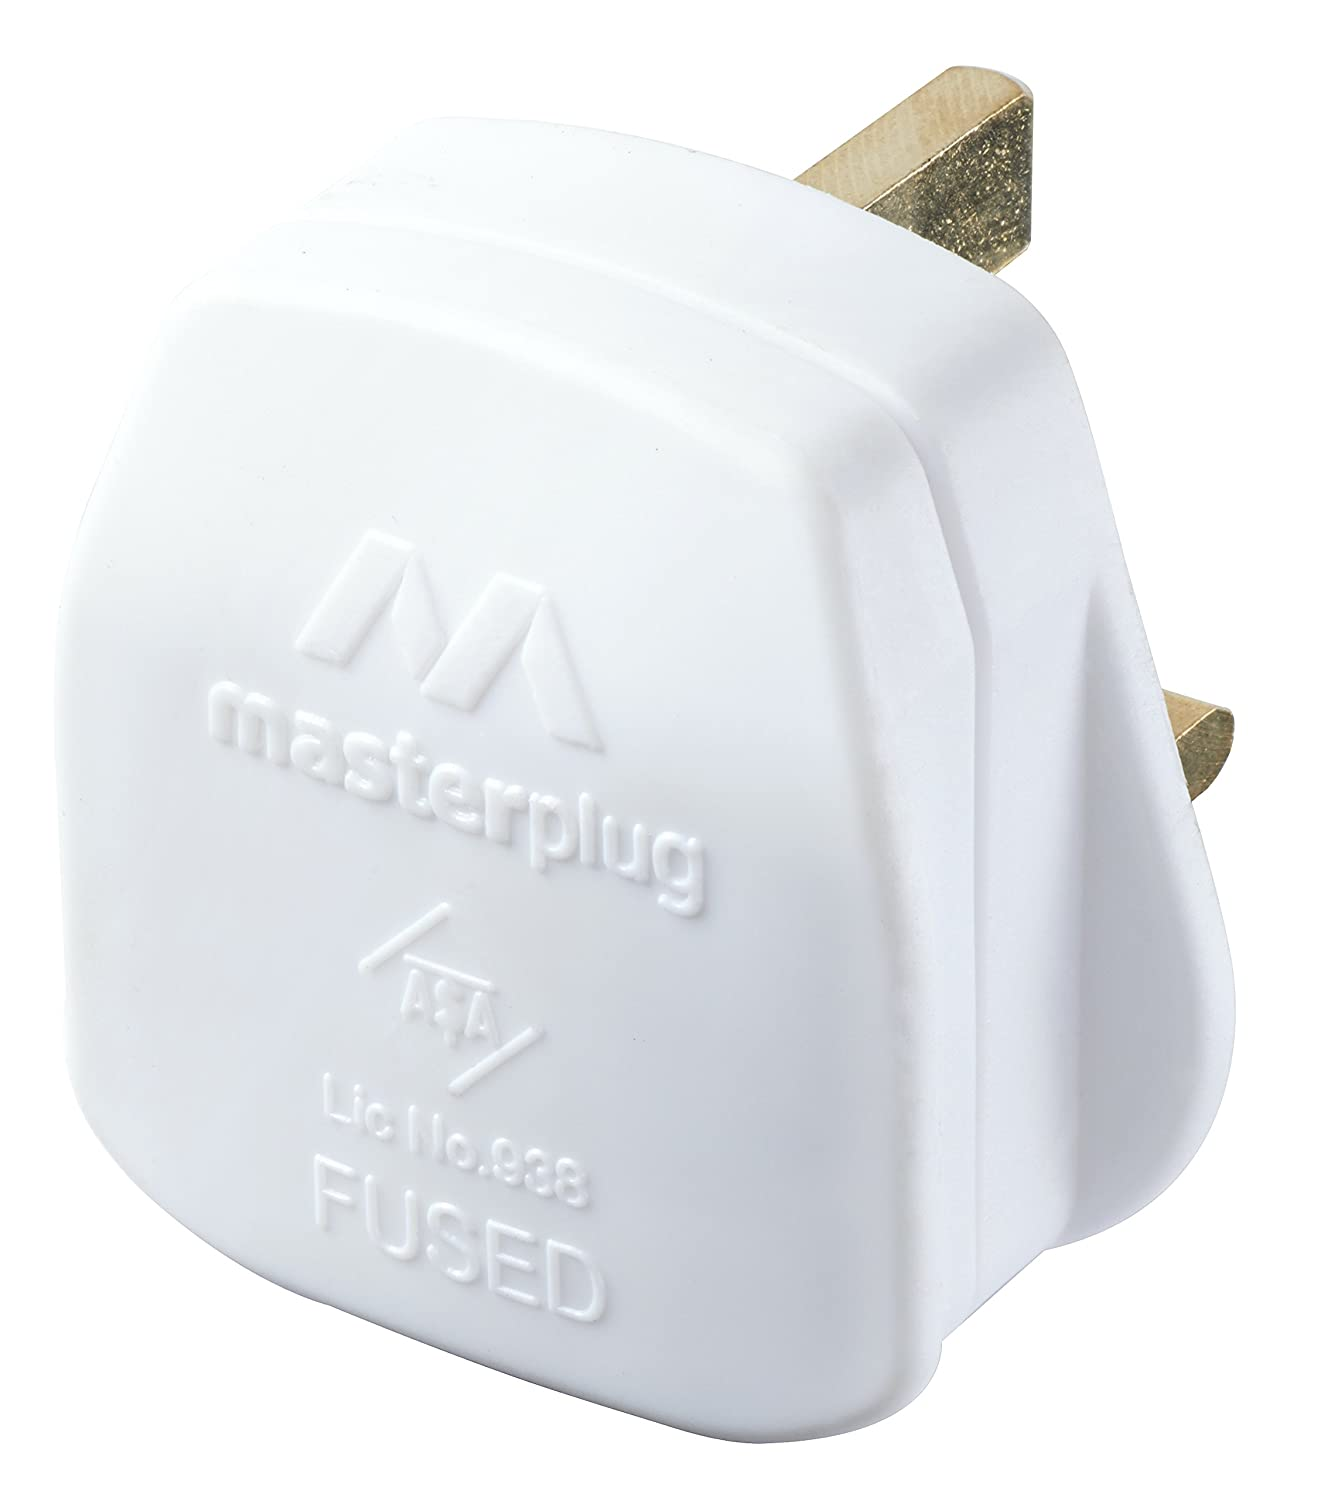 Masterplug PT133W 13amp Plug with 3amp Fuse - White PT133W-MS